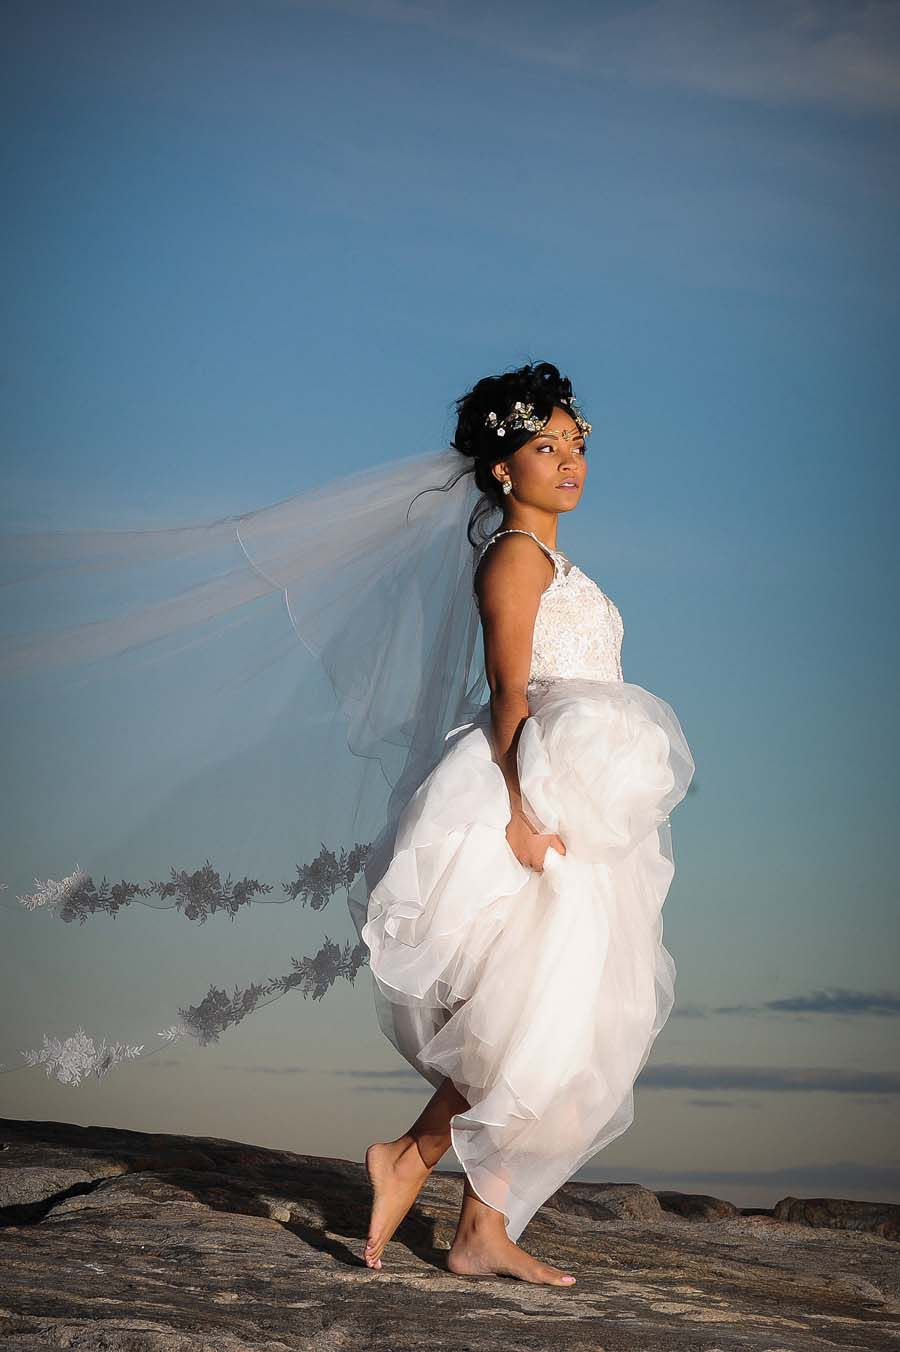 View More: http://5diamondphotography.pass.us/ctbridemag-mbh